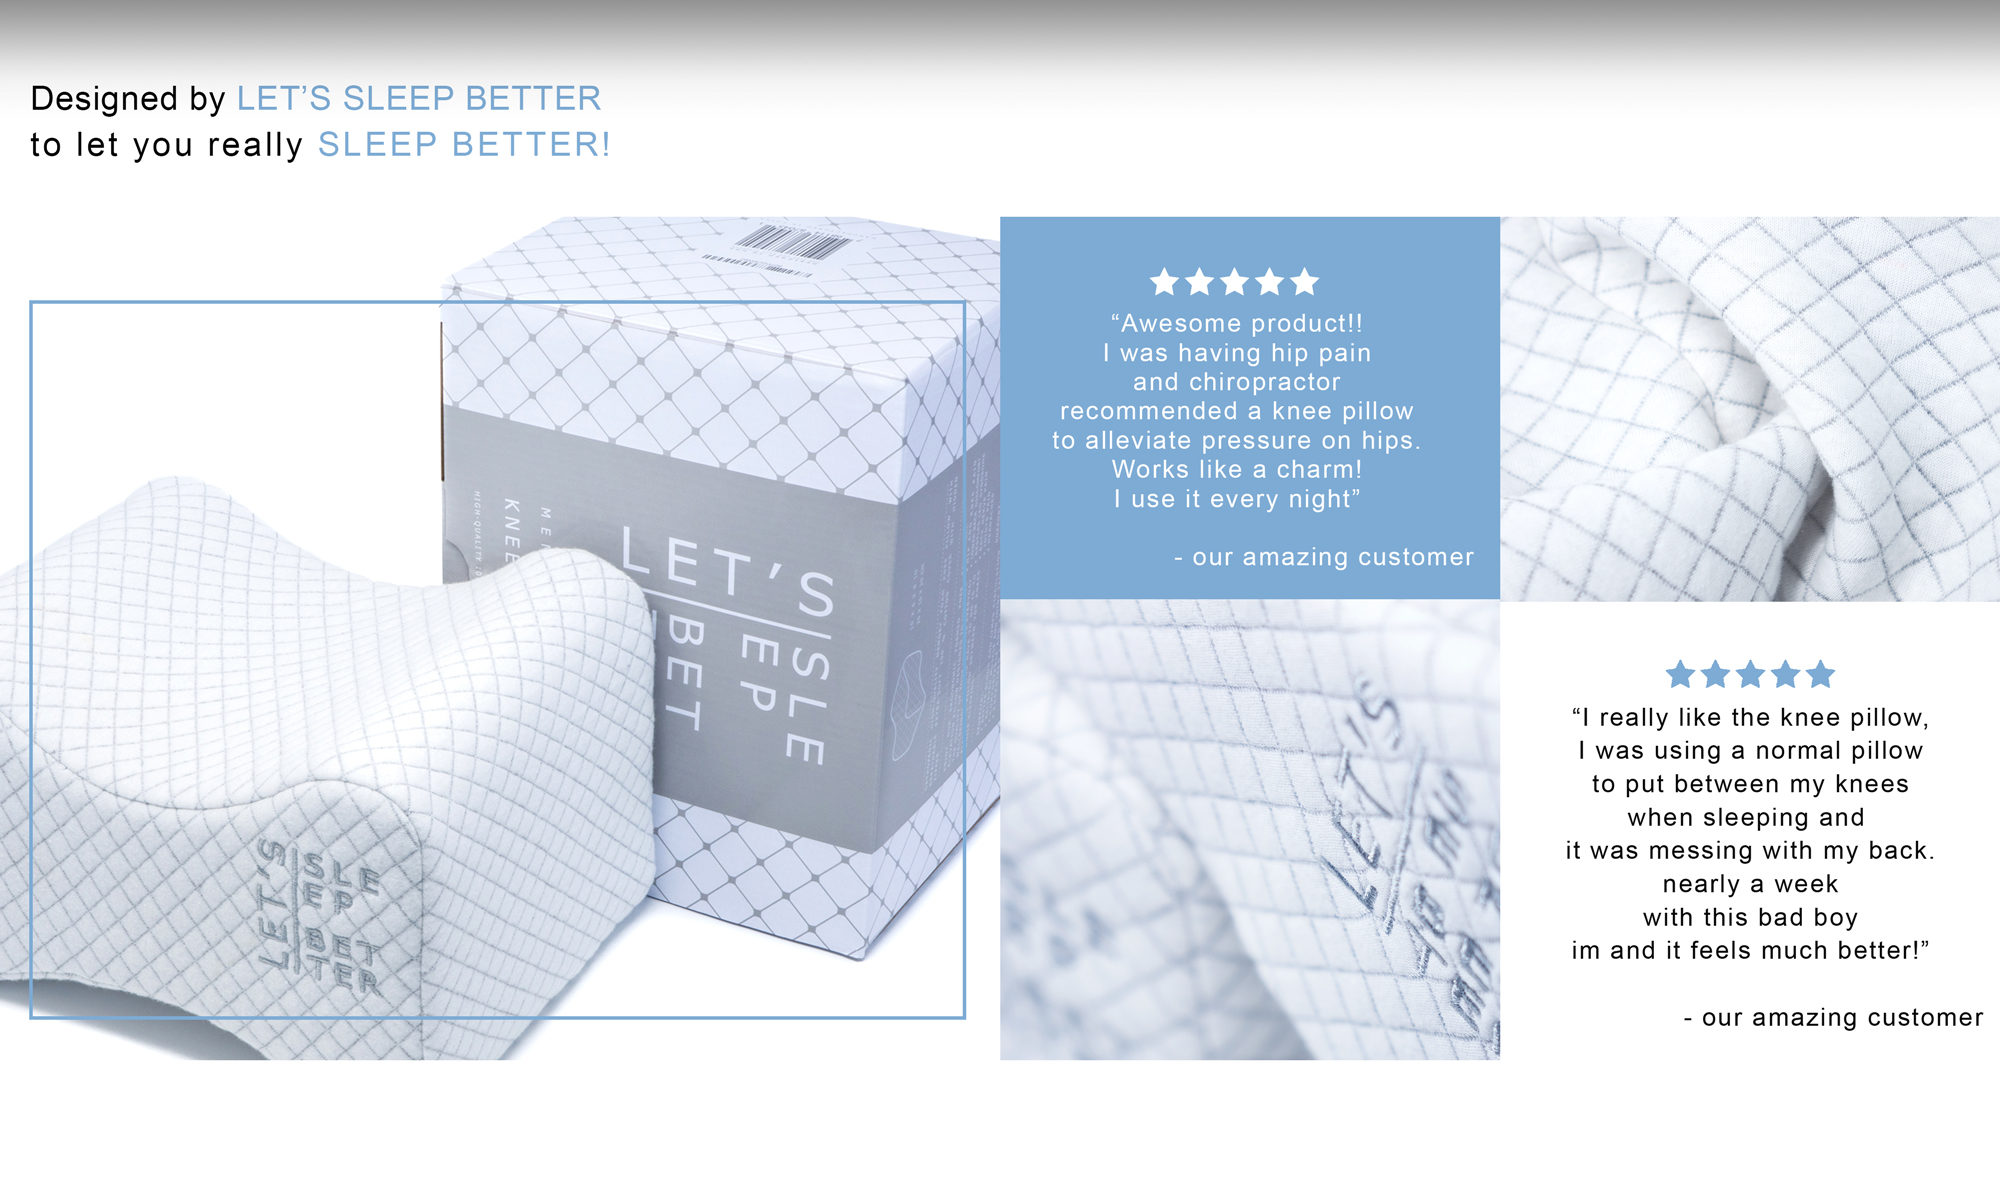 LET'S SLEEP BETTER knee pillow for side sleepers, memory foam, premium, high quality, amazon